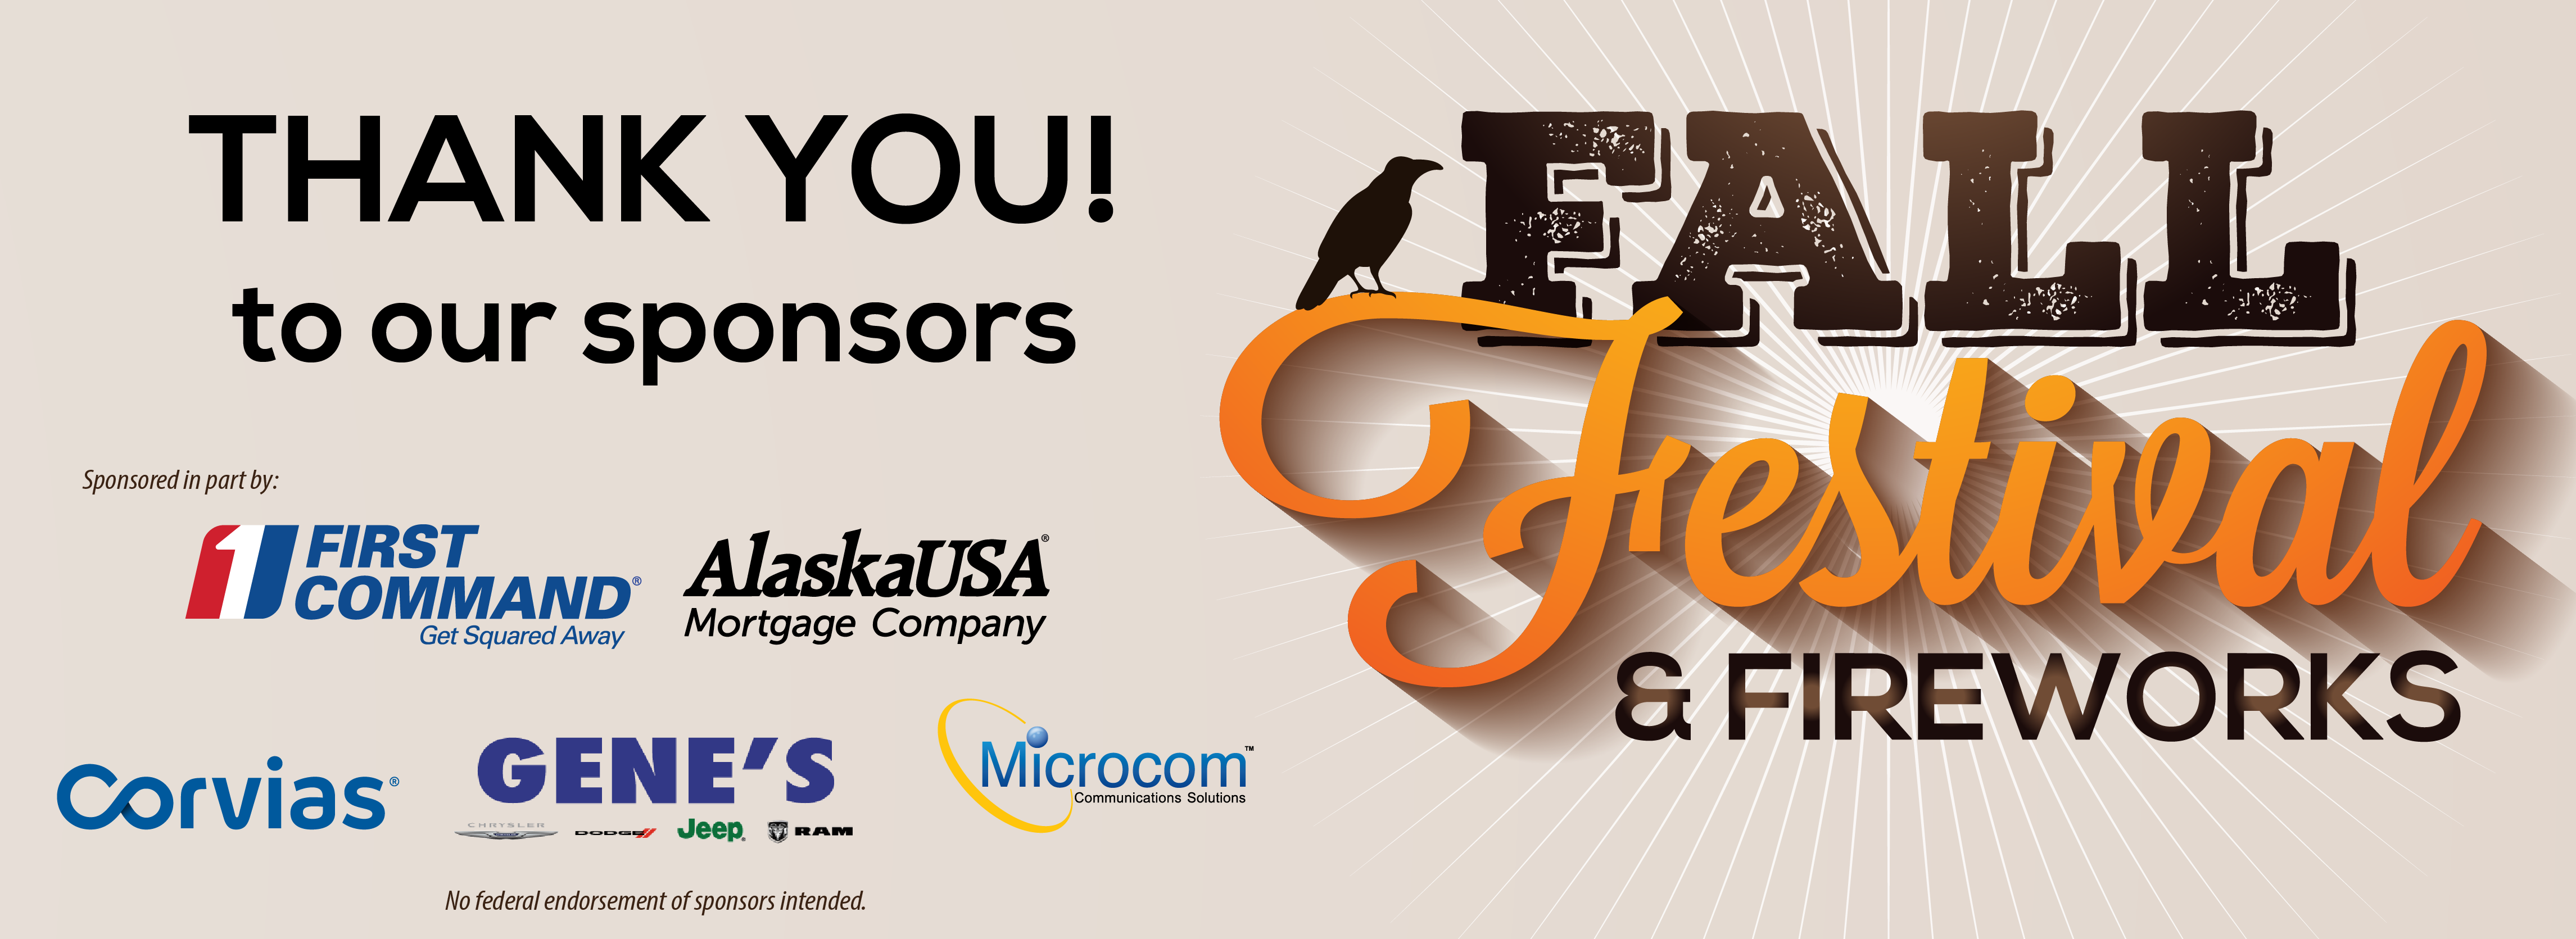 26 OCT Fall Festival Sponsors Thank You Web Banner 01